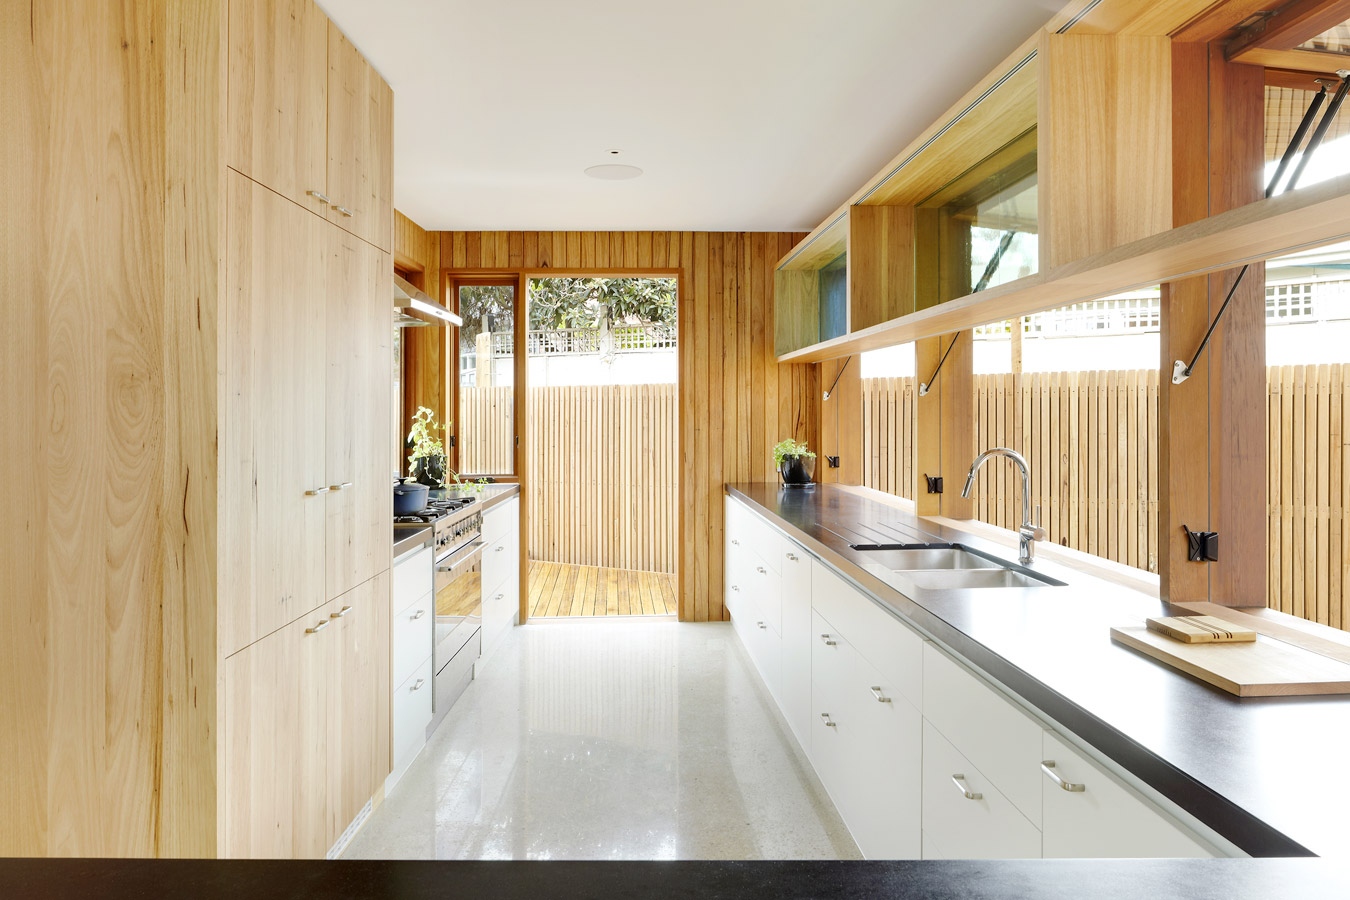 Overend Constructions, Fenwick, JFA, kitchen galley-style, timber and white joinery